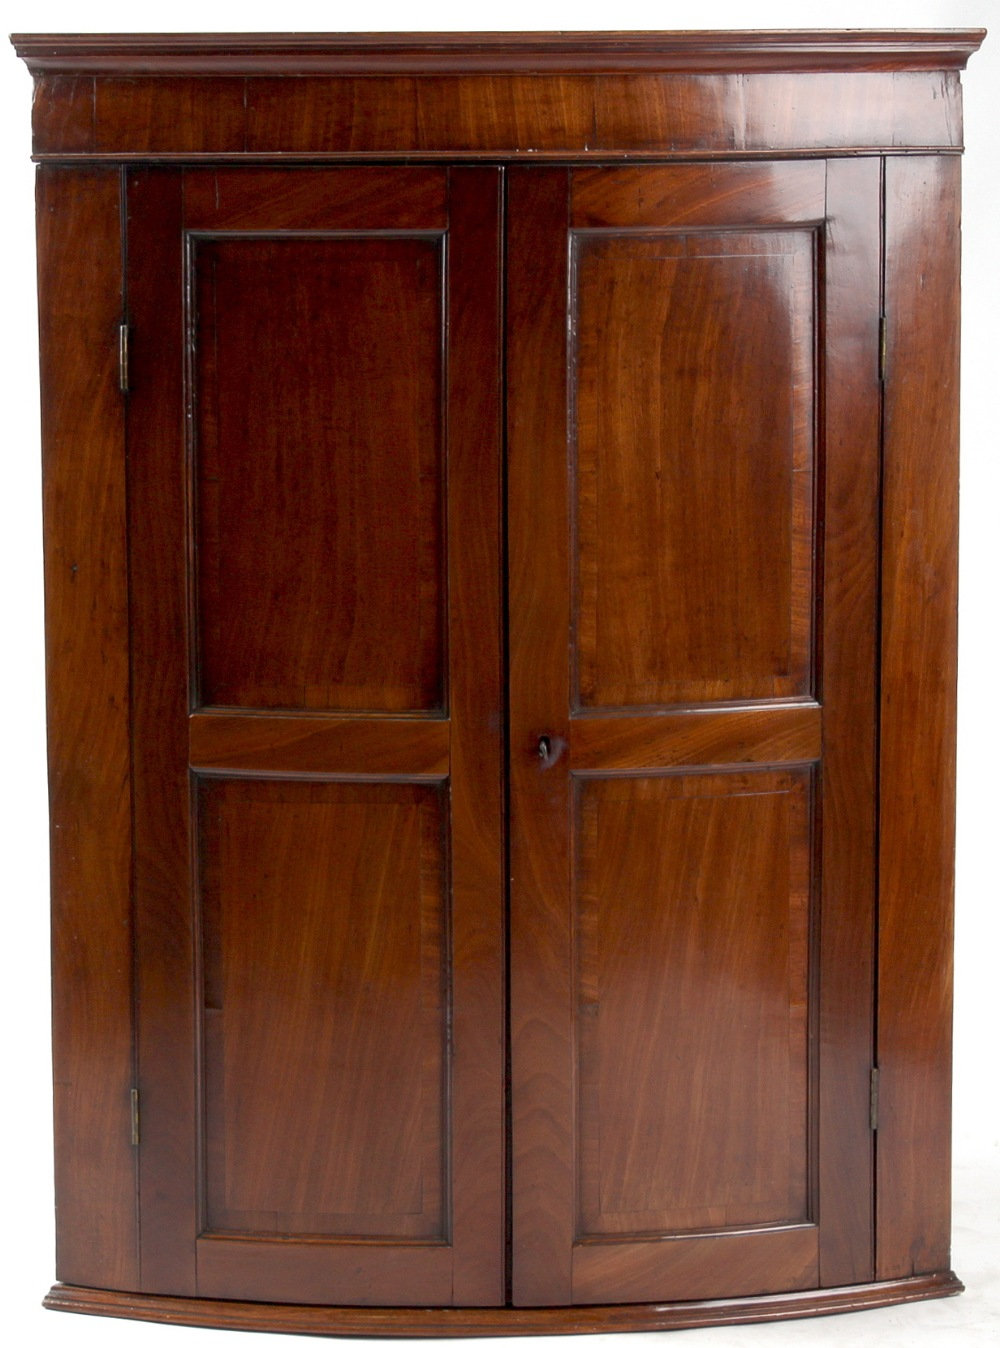 Property of a deceased estate - a George III mahogany bow-fronted two-door corner wall cabinet,